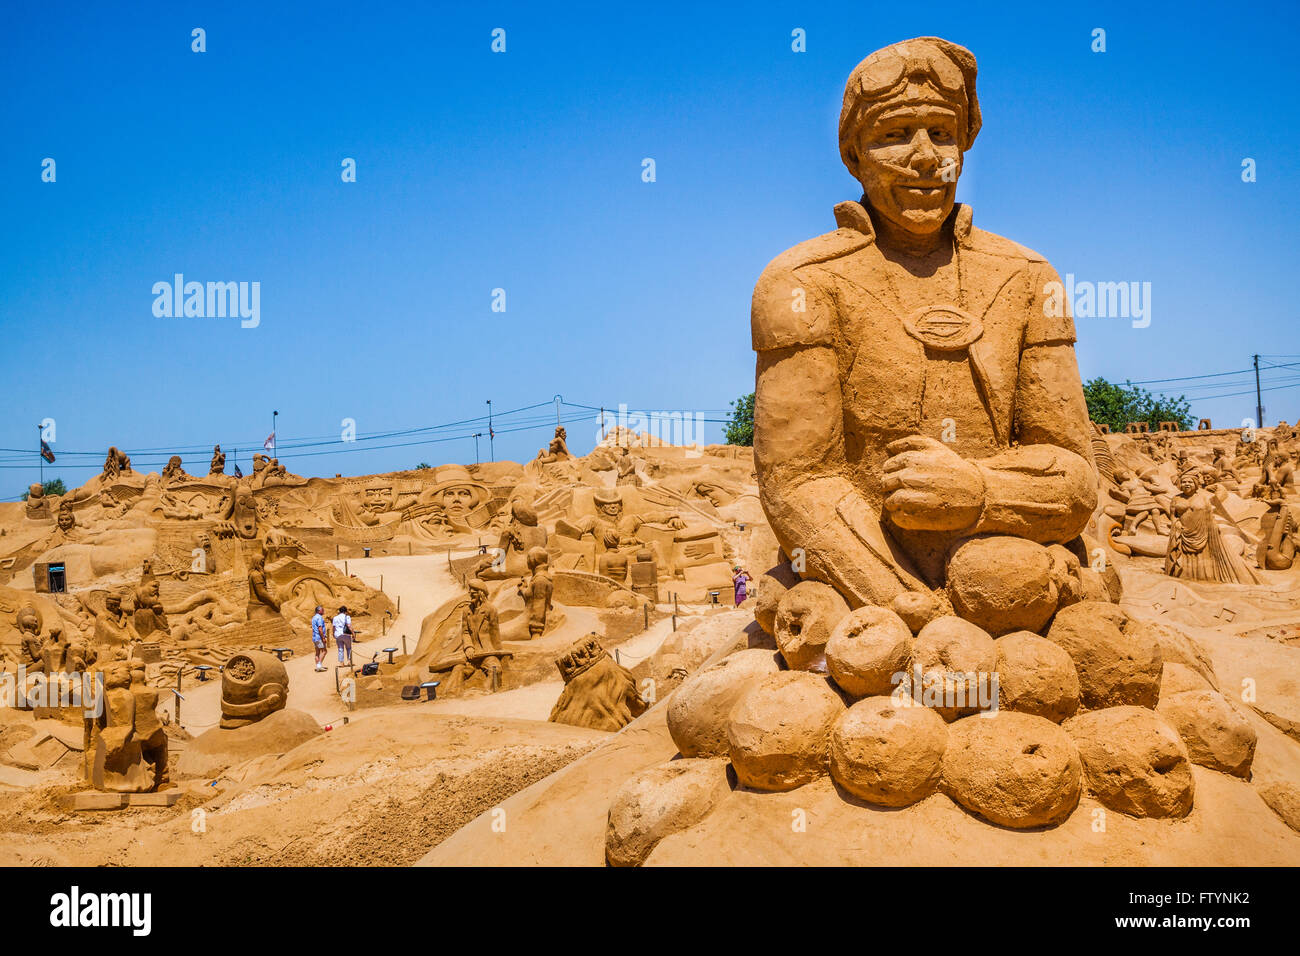 Portugal, Algarve, Faro district, Pera, FIESA International Sand Festival, sand sculptures with the 2013 theme of - Stock Image